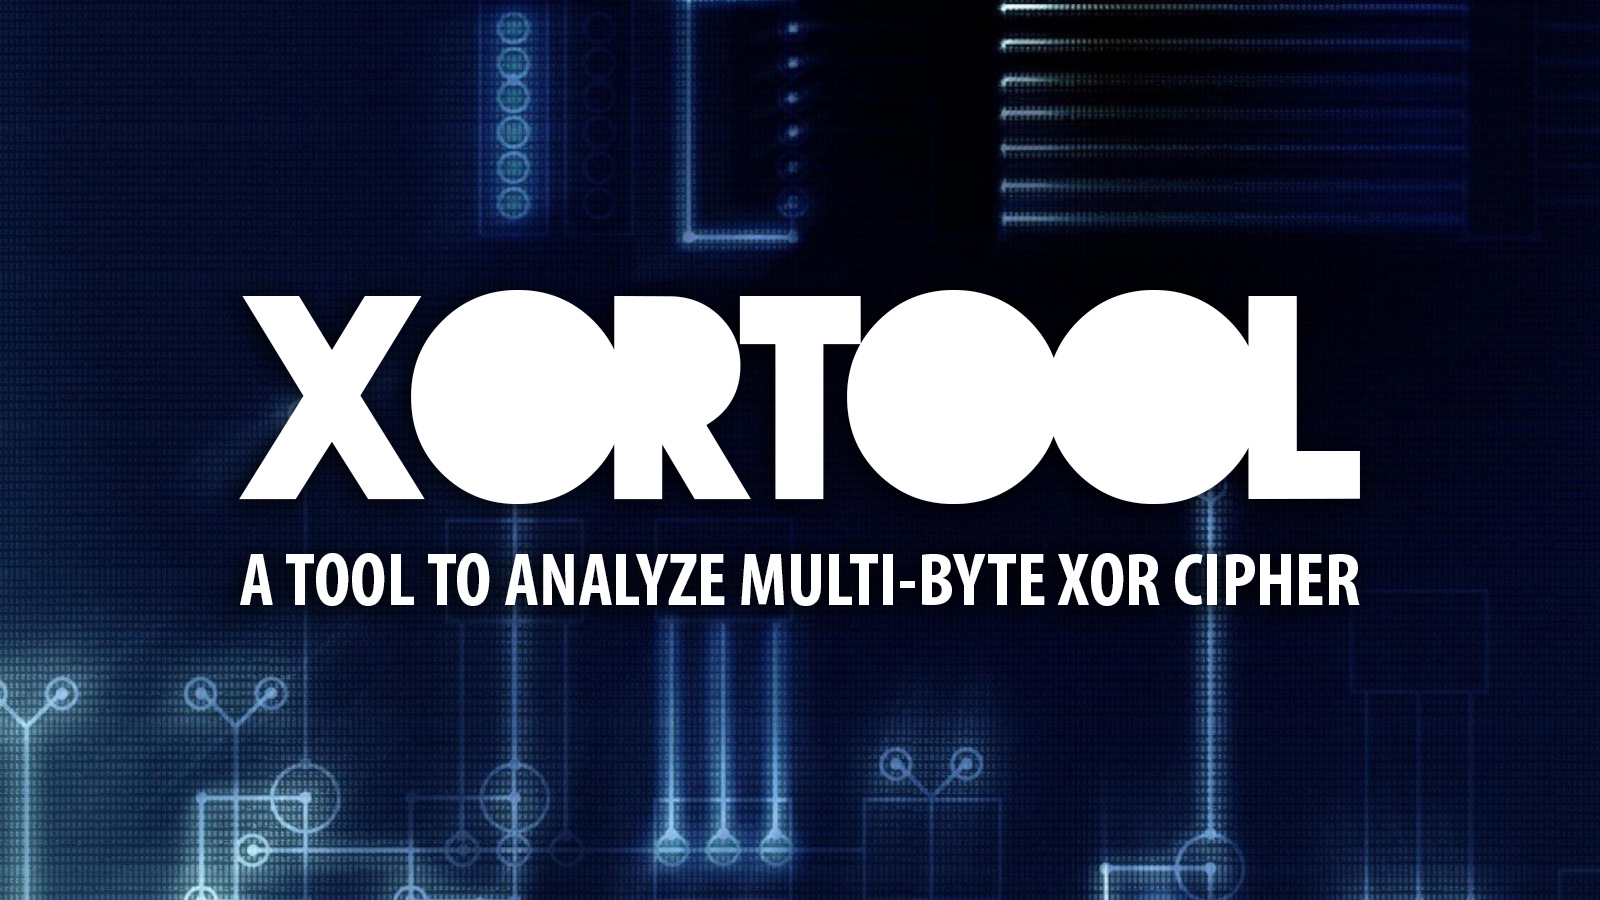 Xortool Multi-byte XOR Cipher Analyzer